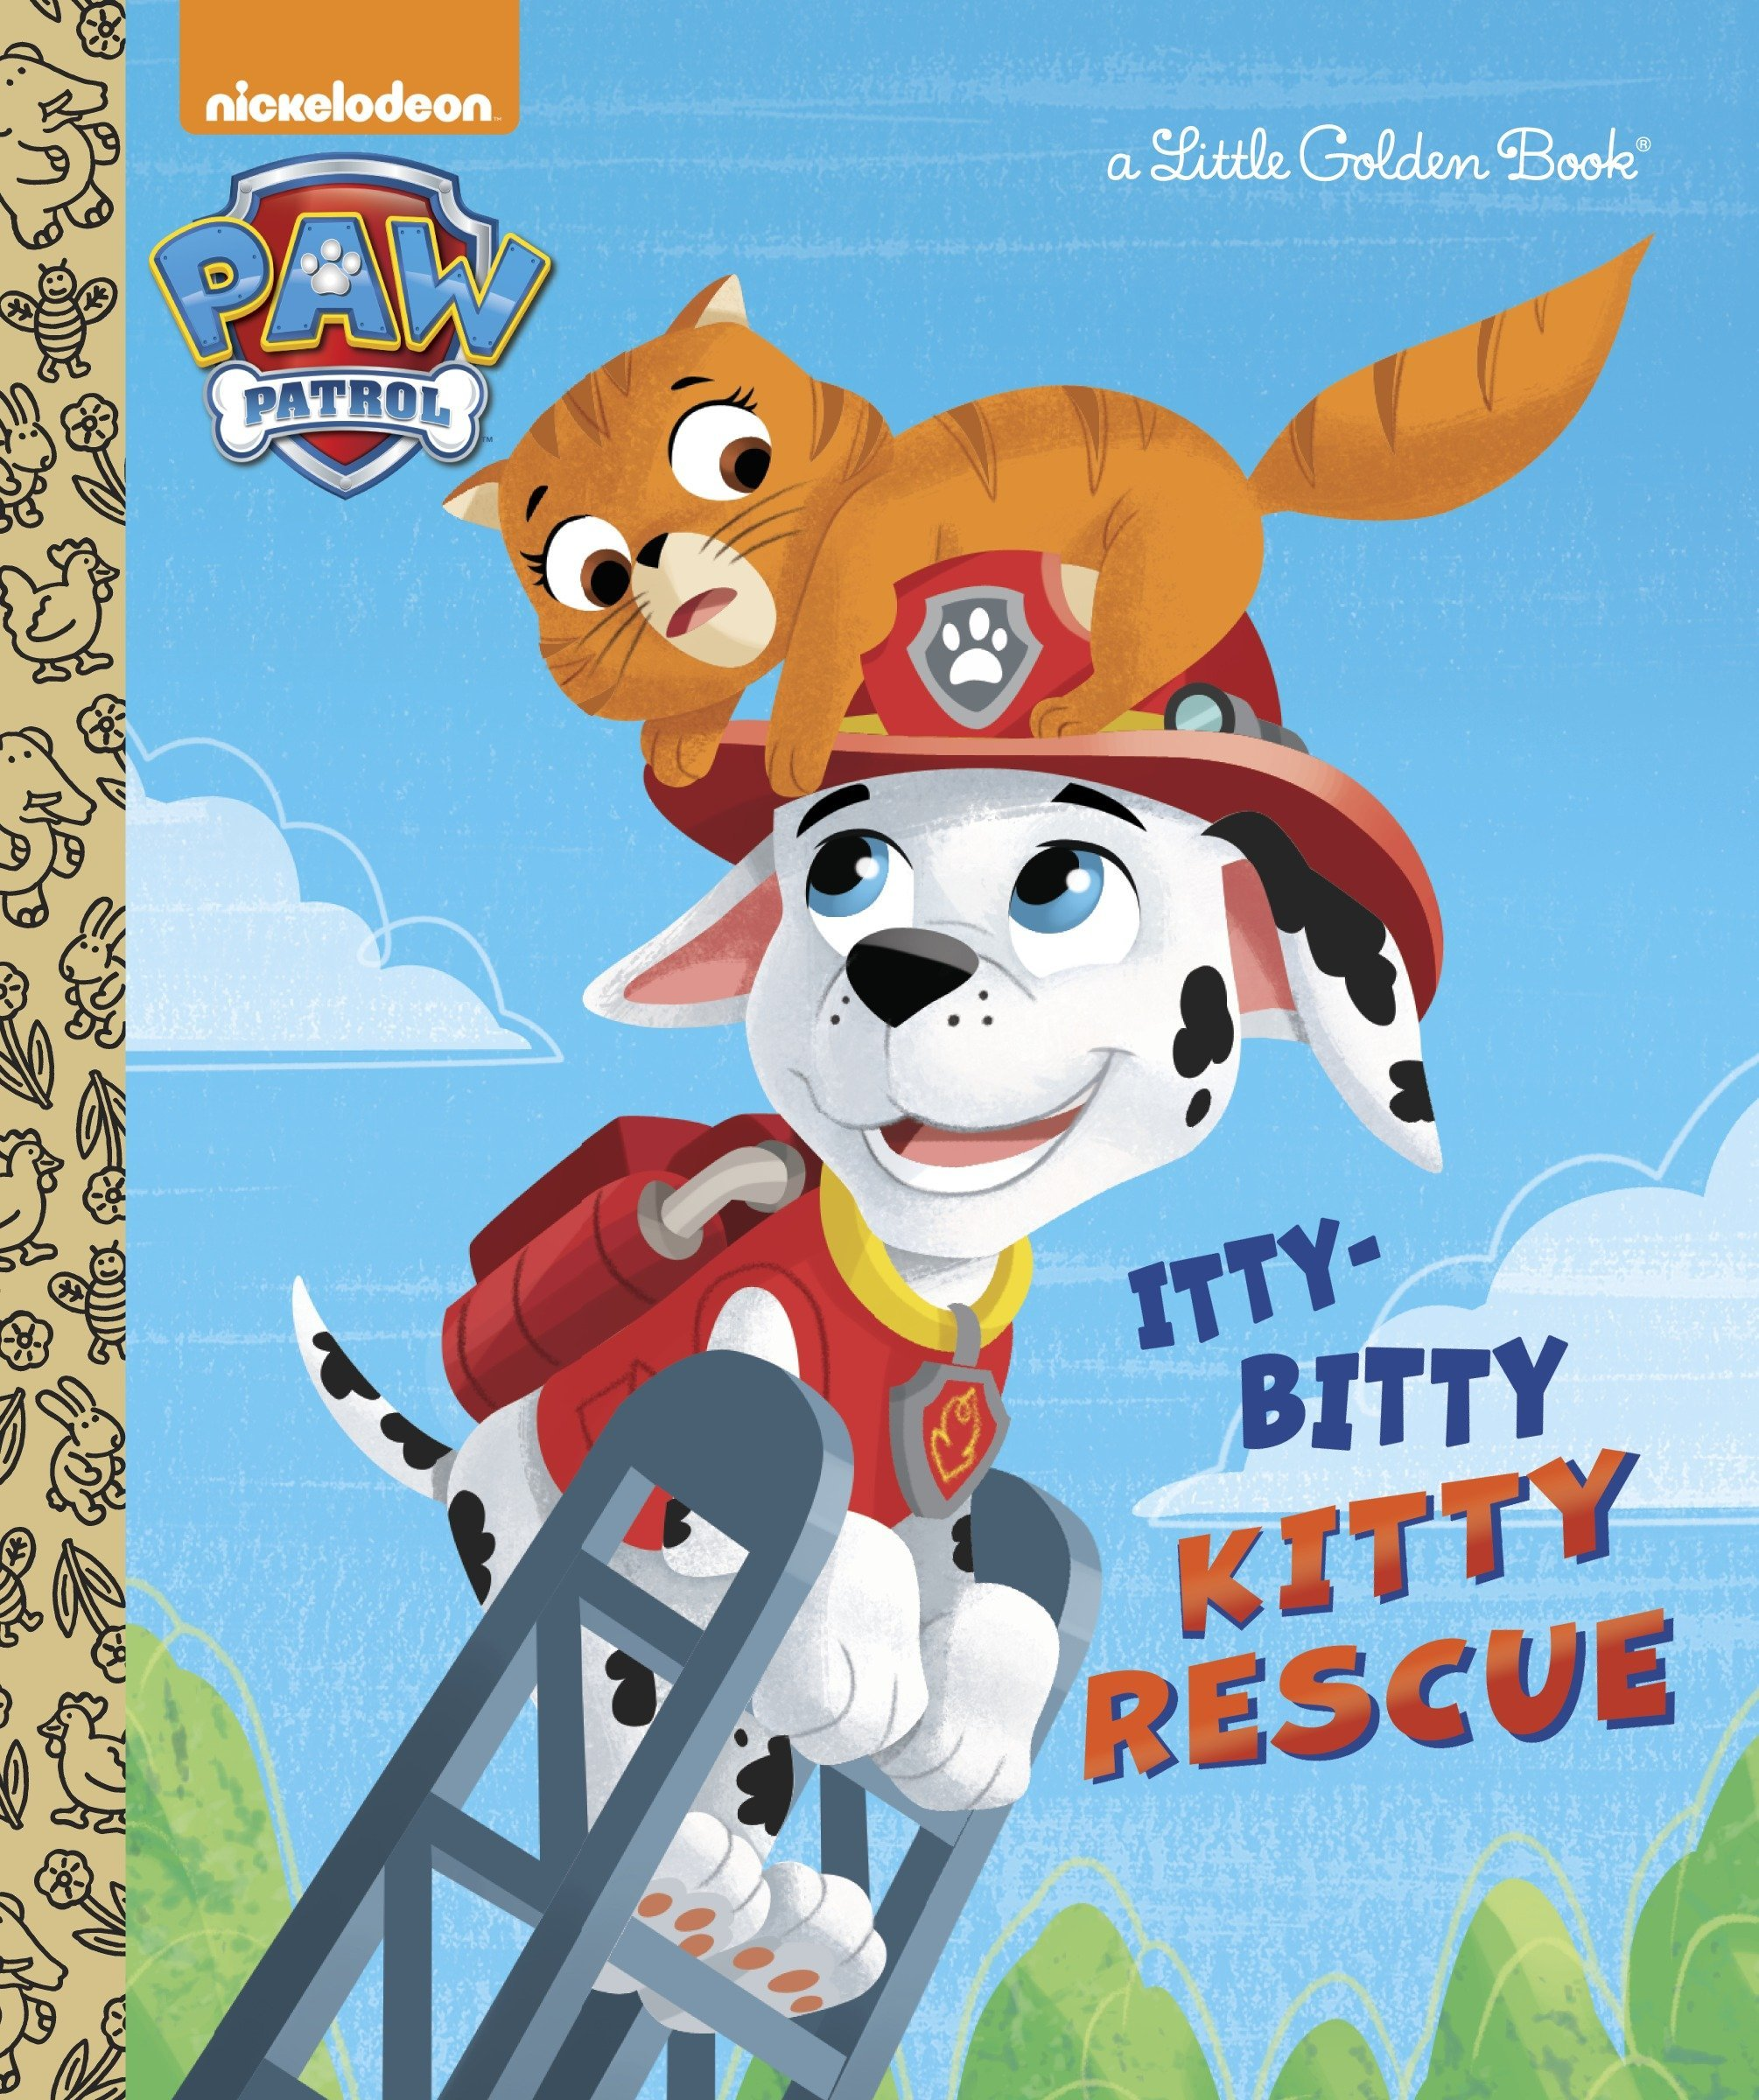 The Itty-Bitty Kitty Rescue (Paw Patrol) (Little Golden Book) pdf